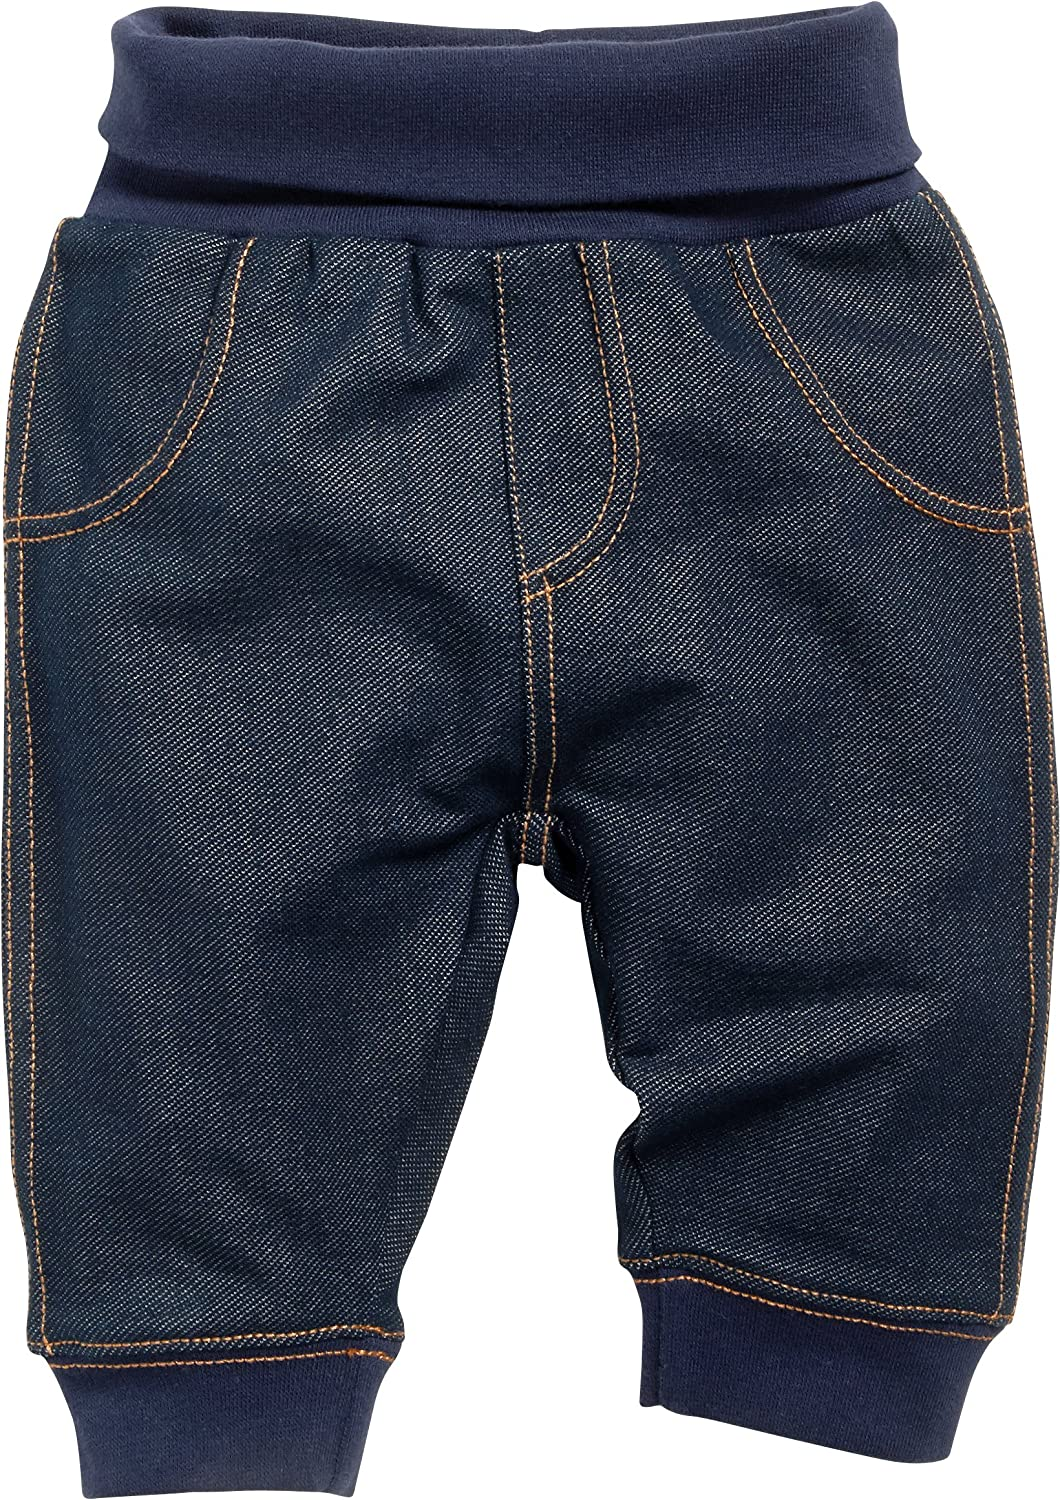 Schnizler Baby Sweat-Hose Jeans-Optik Trousers